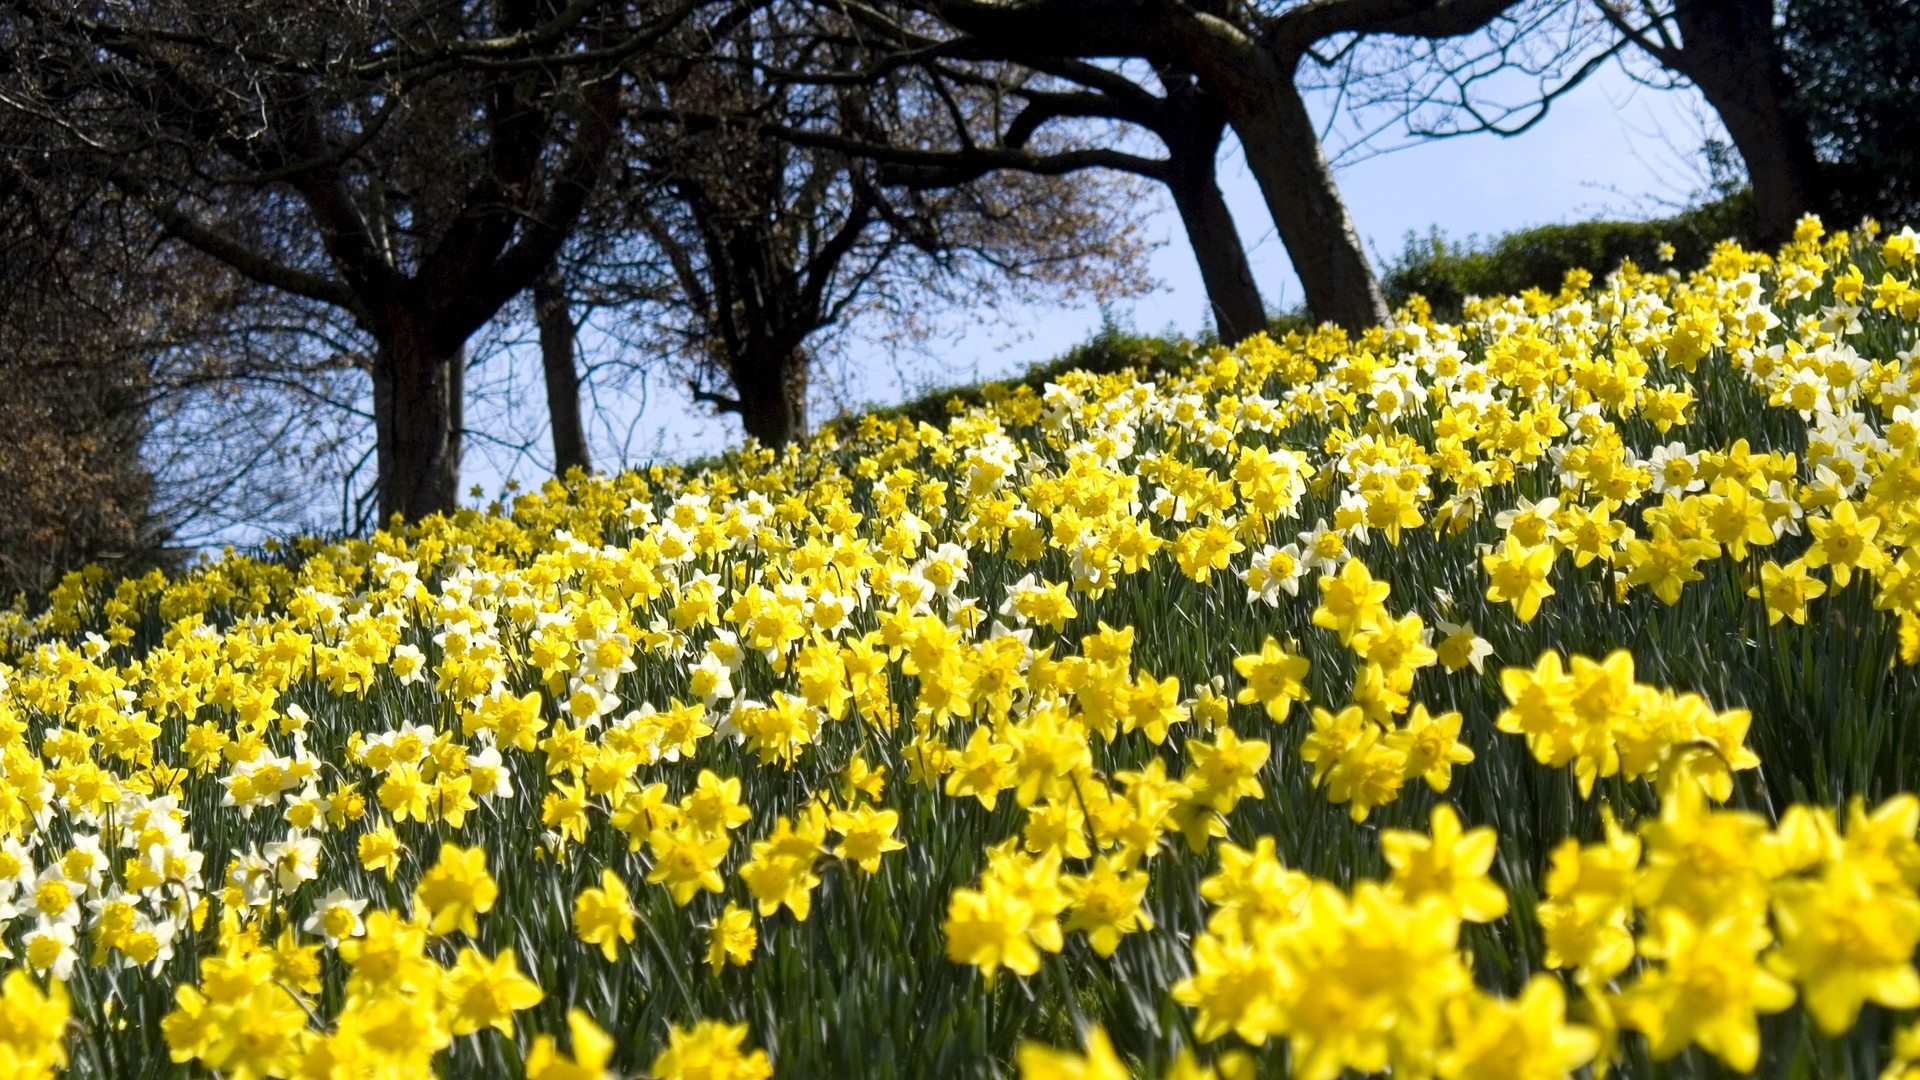 download wallpaper 1920x1080 daffodils, flowers, slope, trees